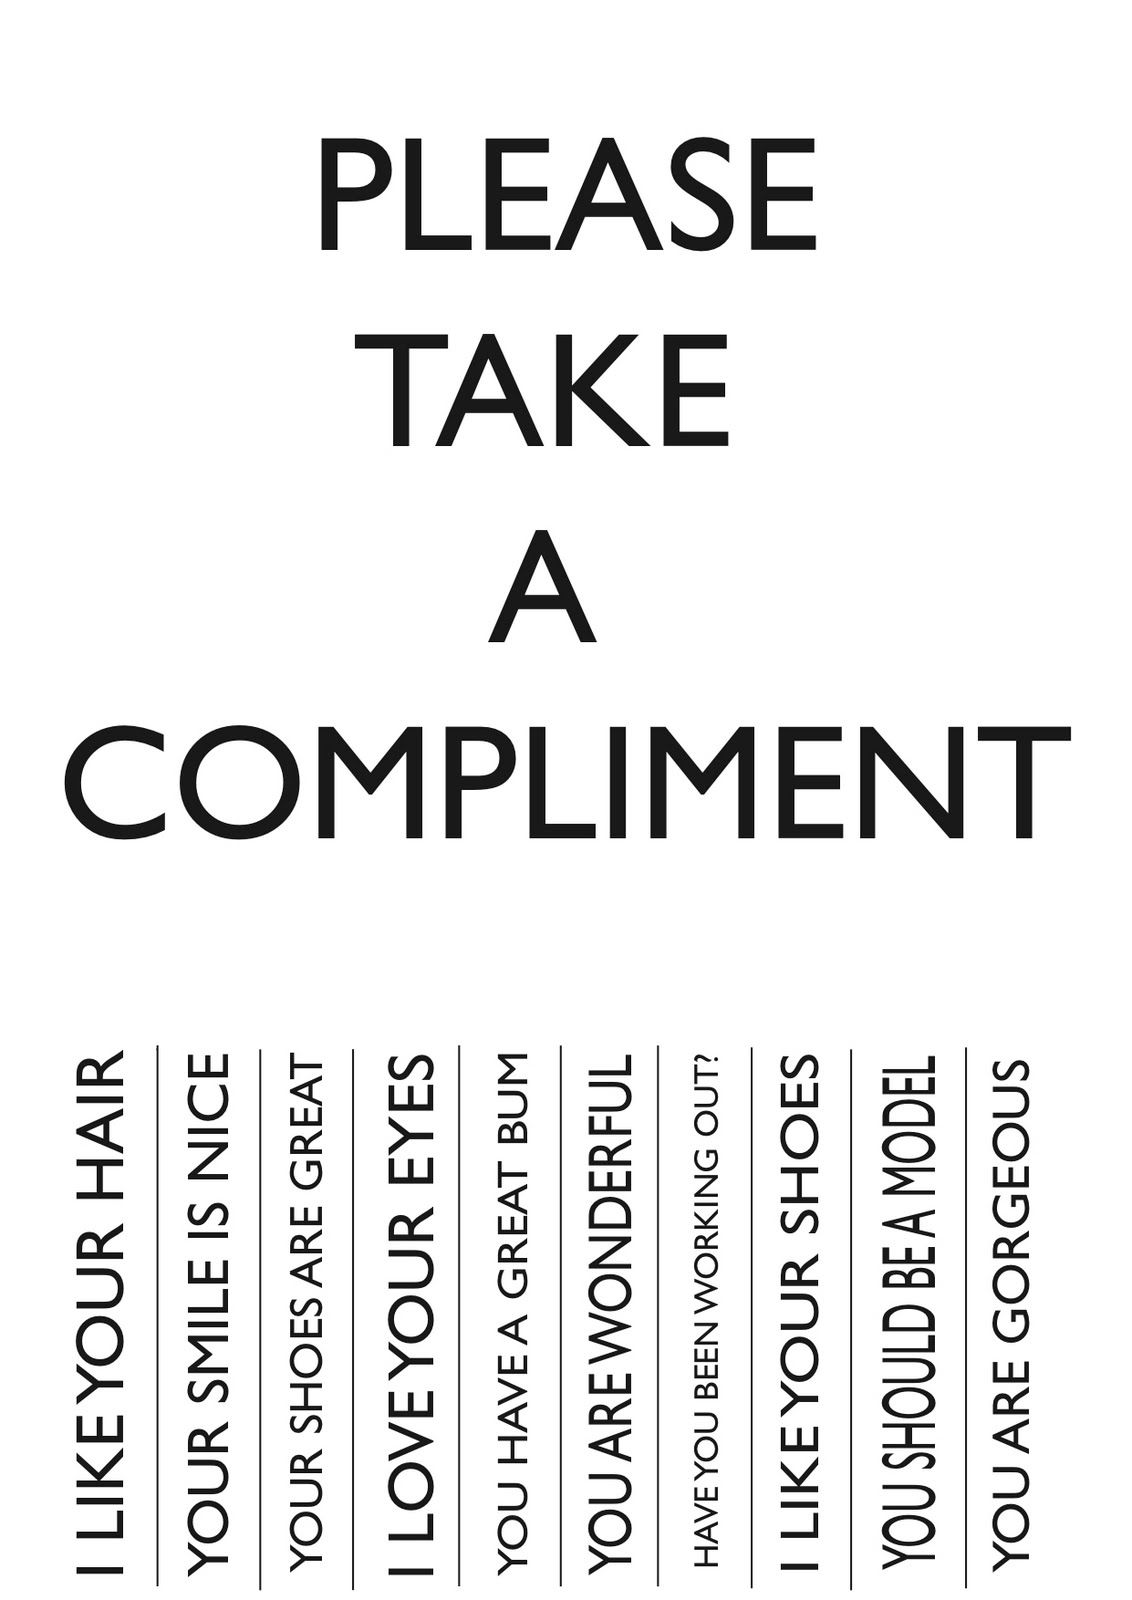 Why Dont People Take Compliments Well Quotes Words Circuit Board Embellished Frame Creativitylife Pinterest Things That Are On My